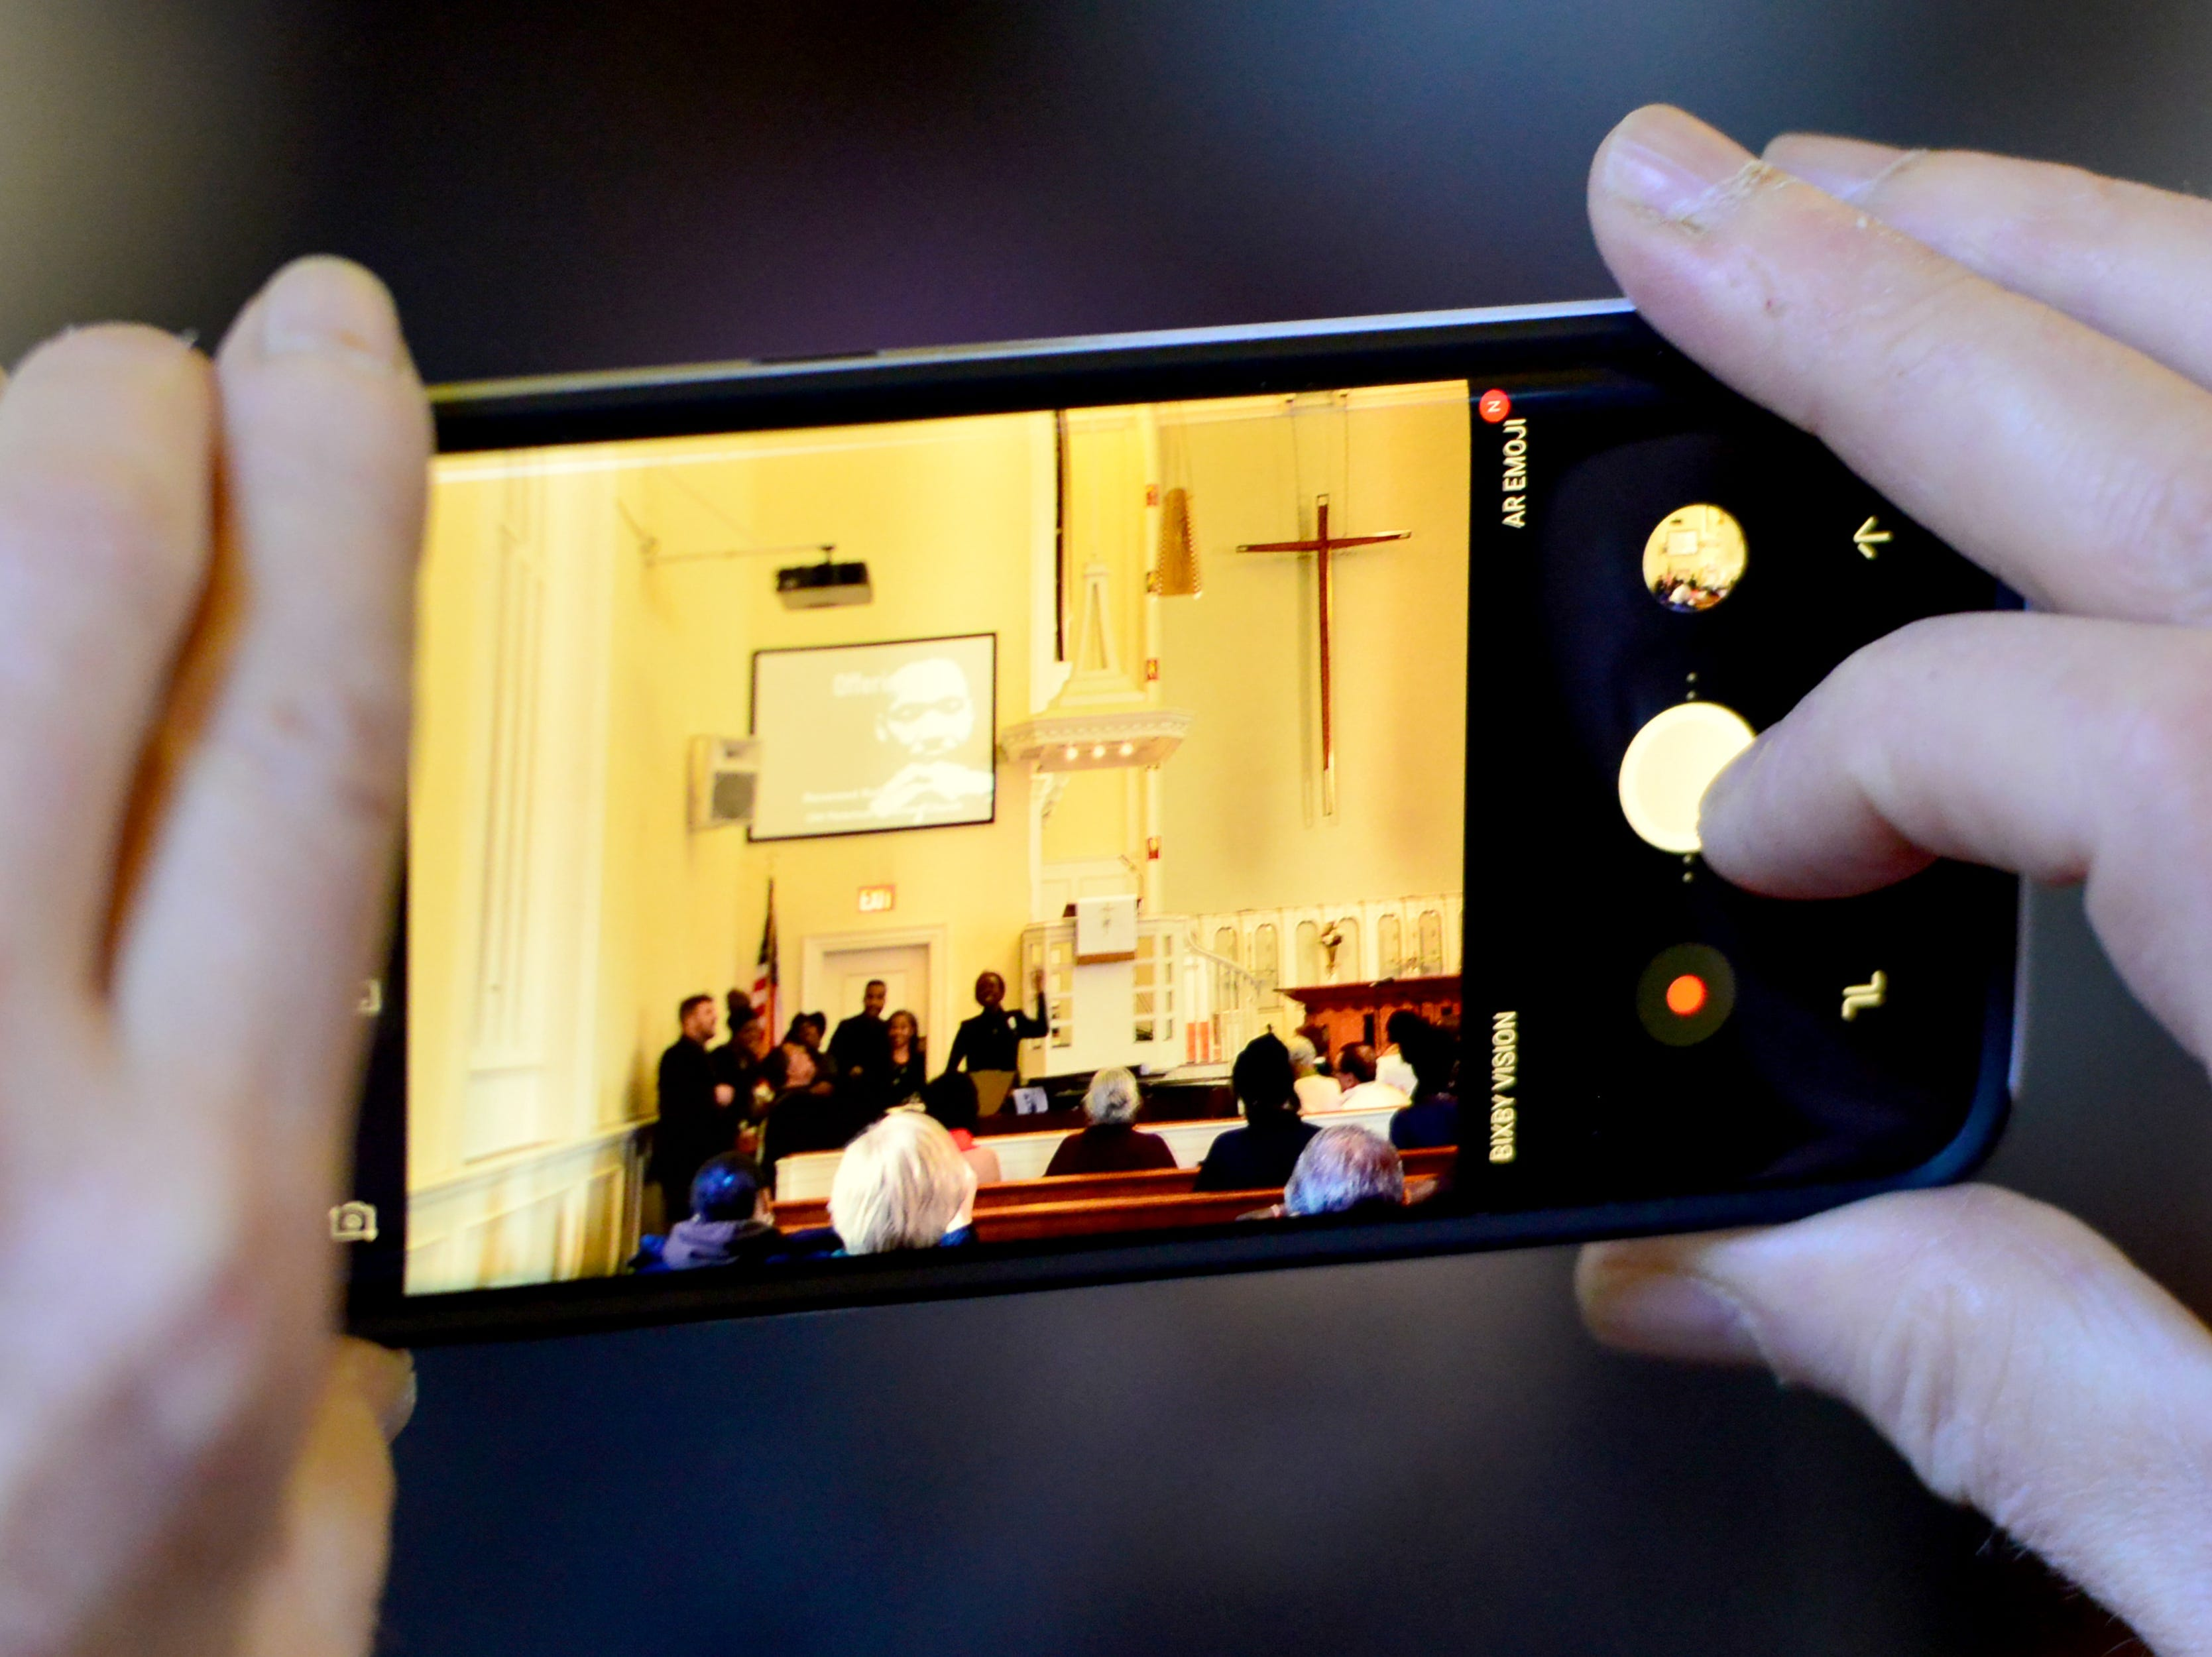 A man uses his cell phone to record part of the  performance of Rev. Mark Brandon and The Connection of Metropolitan A.M.E. Zion Church, of Ridgewood, N.J. at the Ridgewood United Methodist Church, which held its 37th year of honoring Dr. Martin Luther King, Jr. in Ridgewood, on Monday January 21, 2019. Area residents and religious leaders from many faiths attended the annual event.